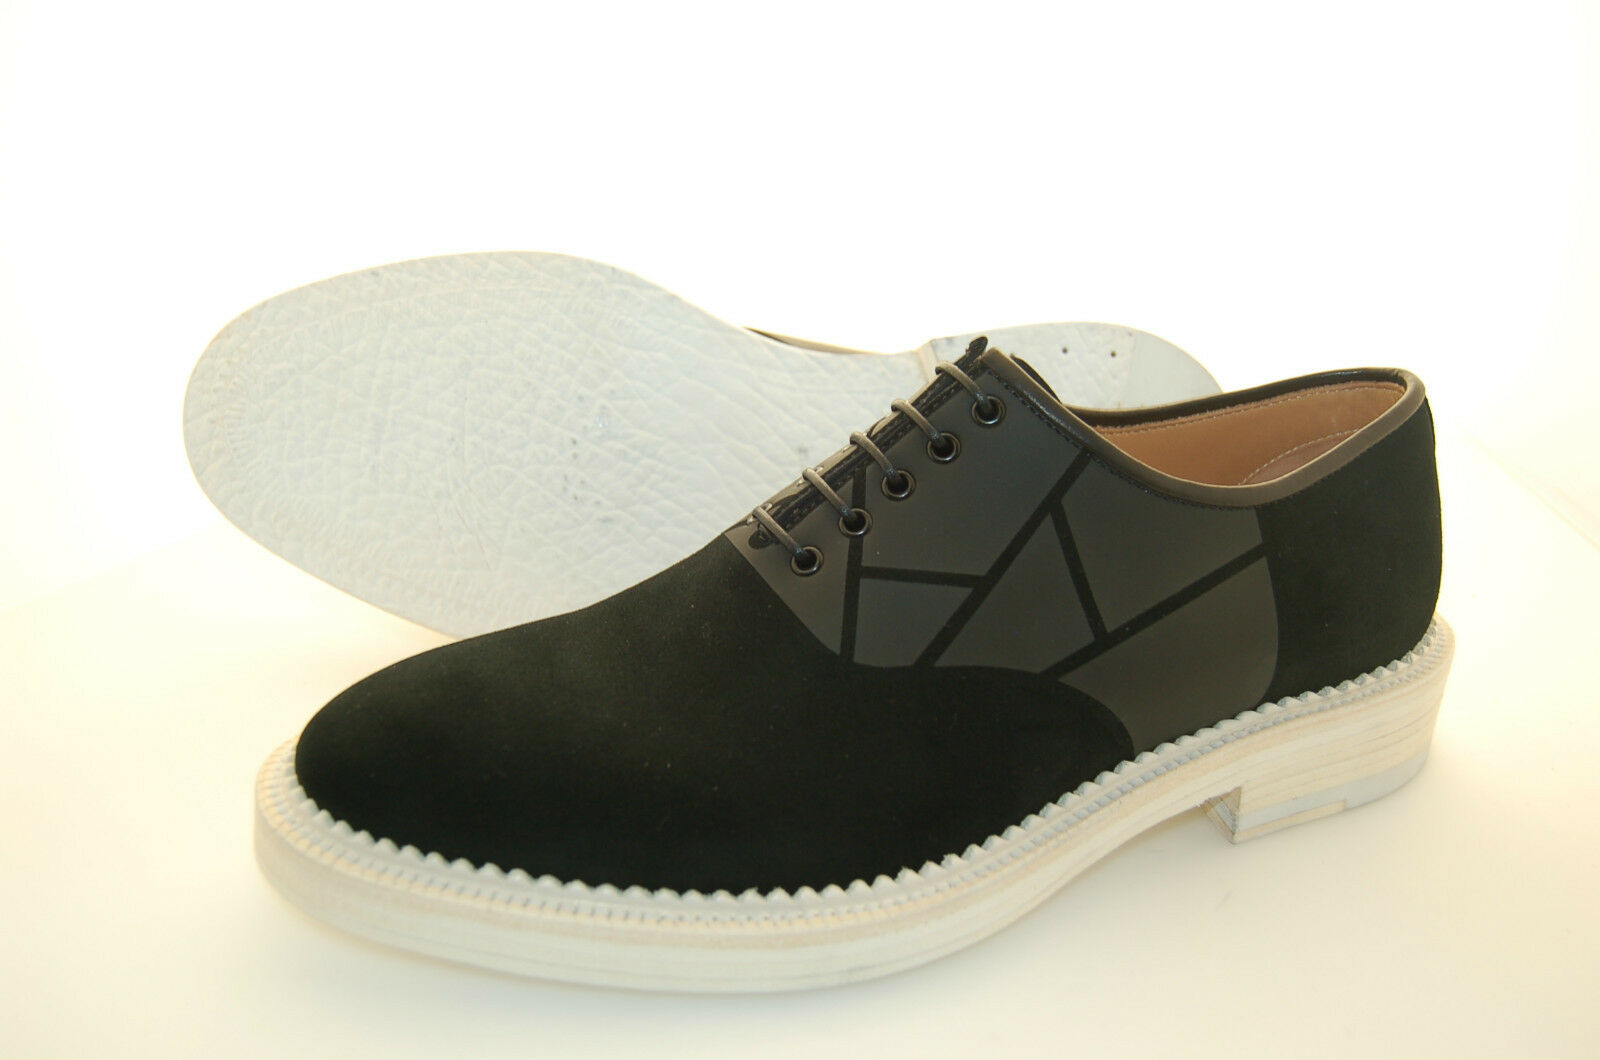 MAN - 41 - OXFORD W. APPLICATION - FRANCESINA - BLACK SUEDE - LEATHER SOLE